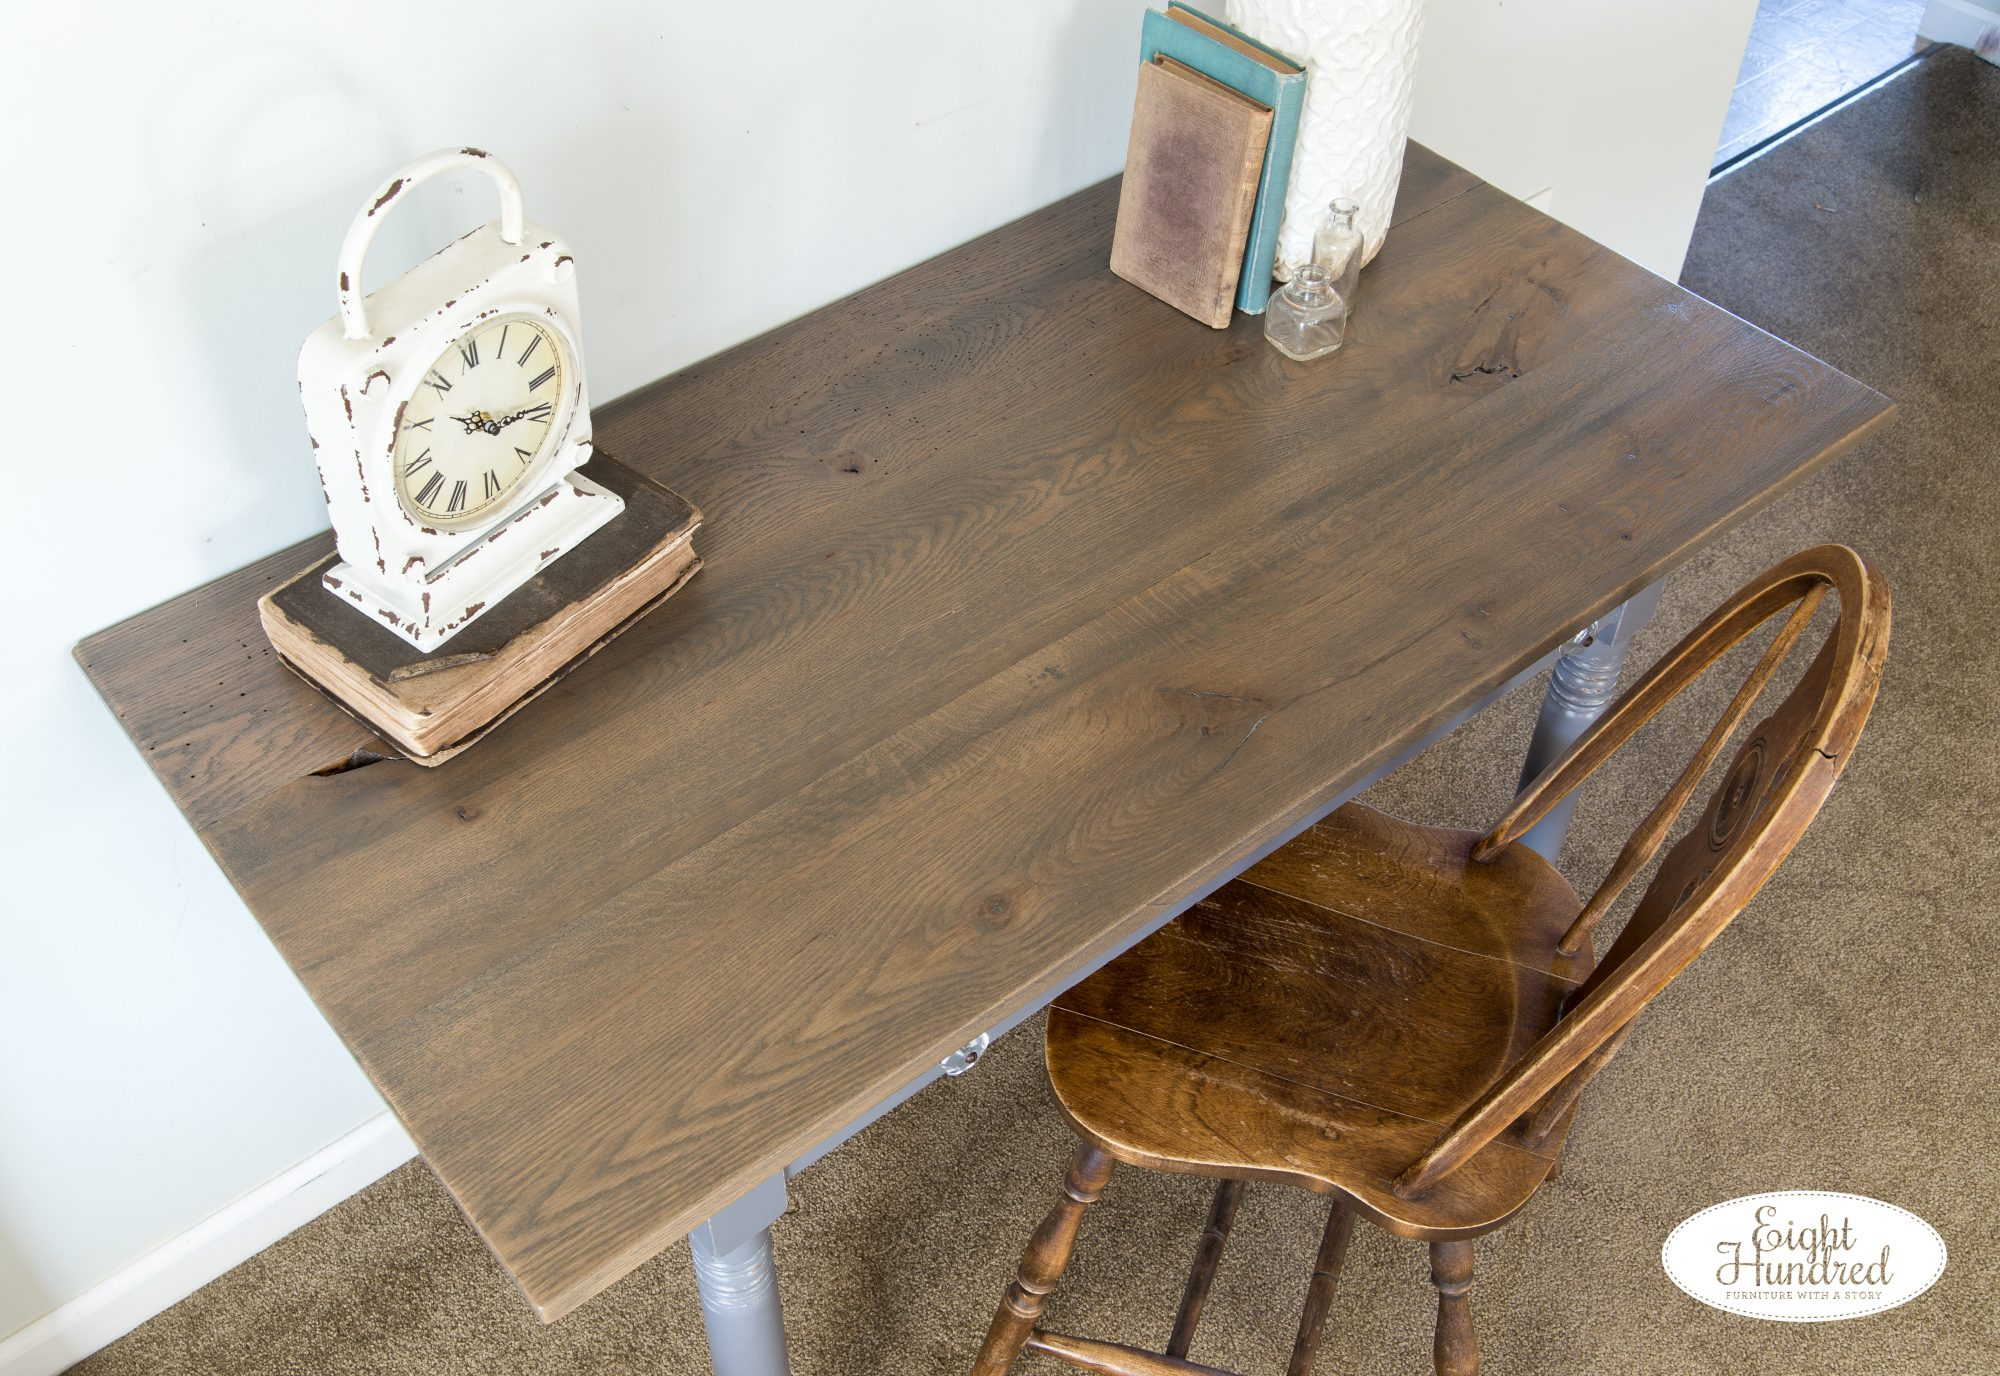 Graystone Water Based Wood Stain on reclaimed oak top of antique table in Driftwood Milk Paint